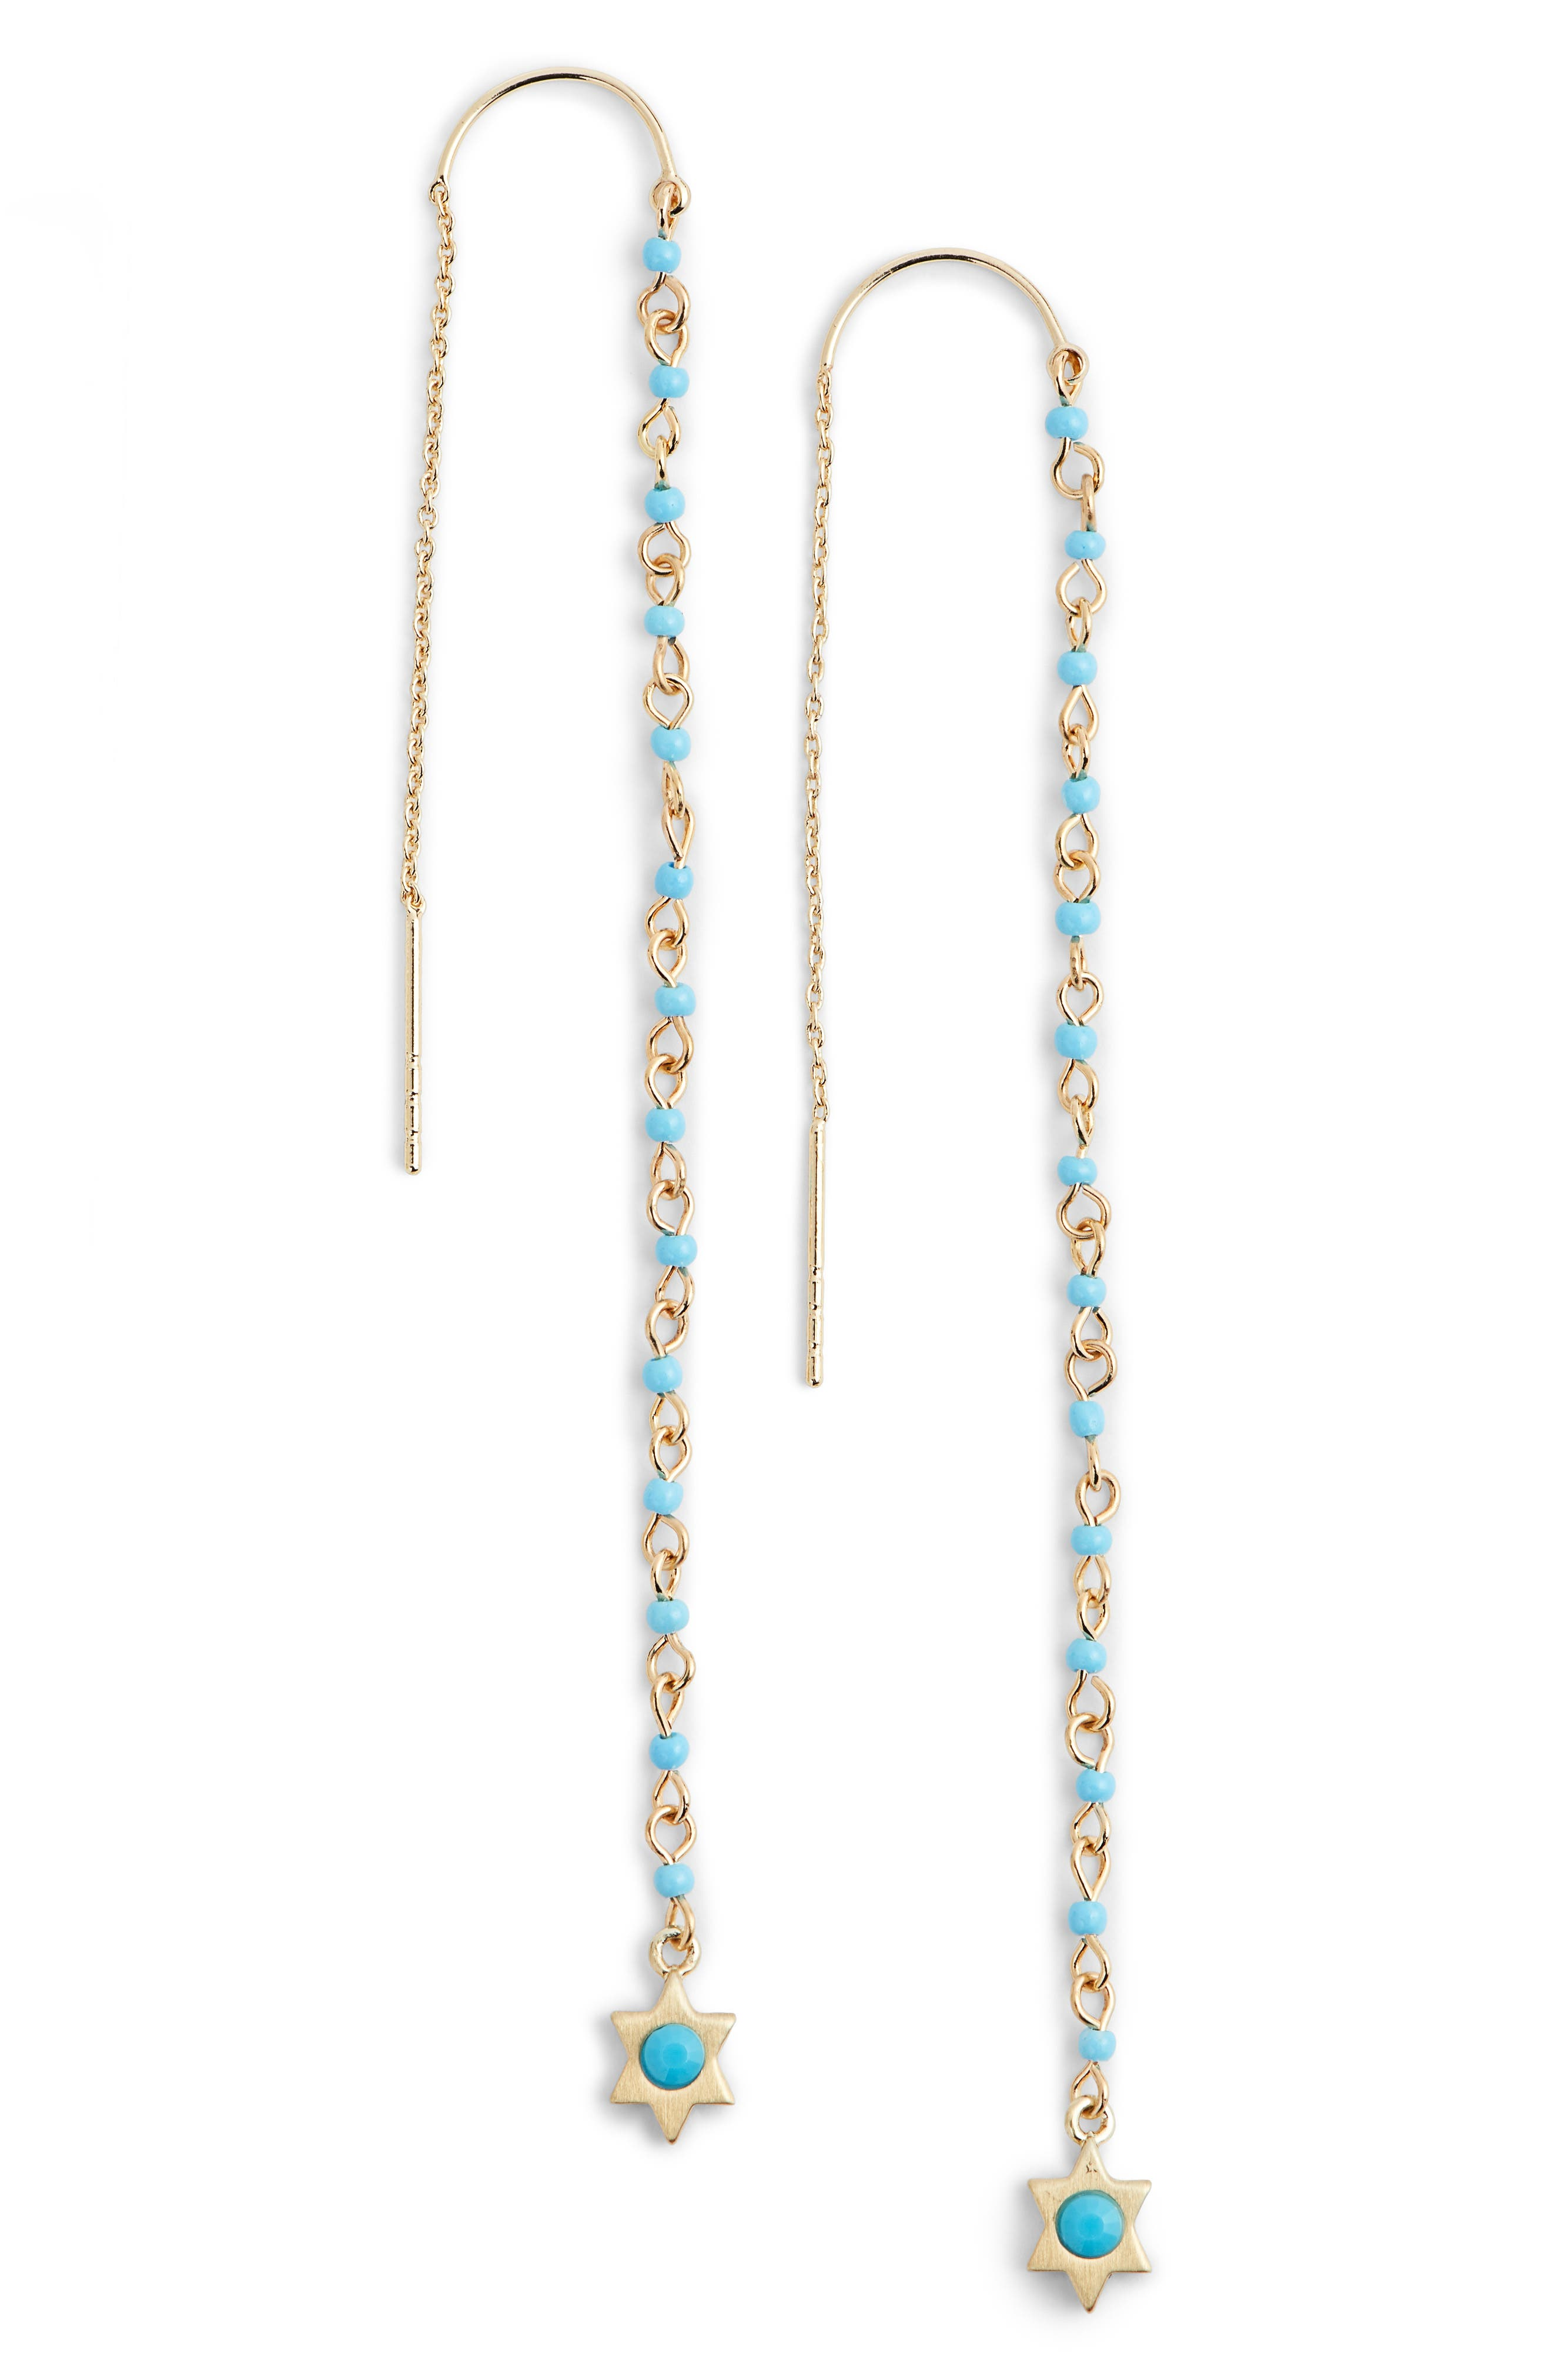 Linear Beaded Threader Earrings,                             Main thumbnail 1, color,                             Turquoise/ Gold